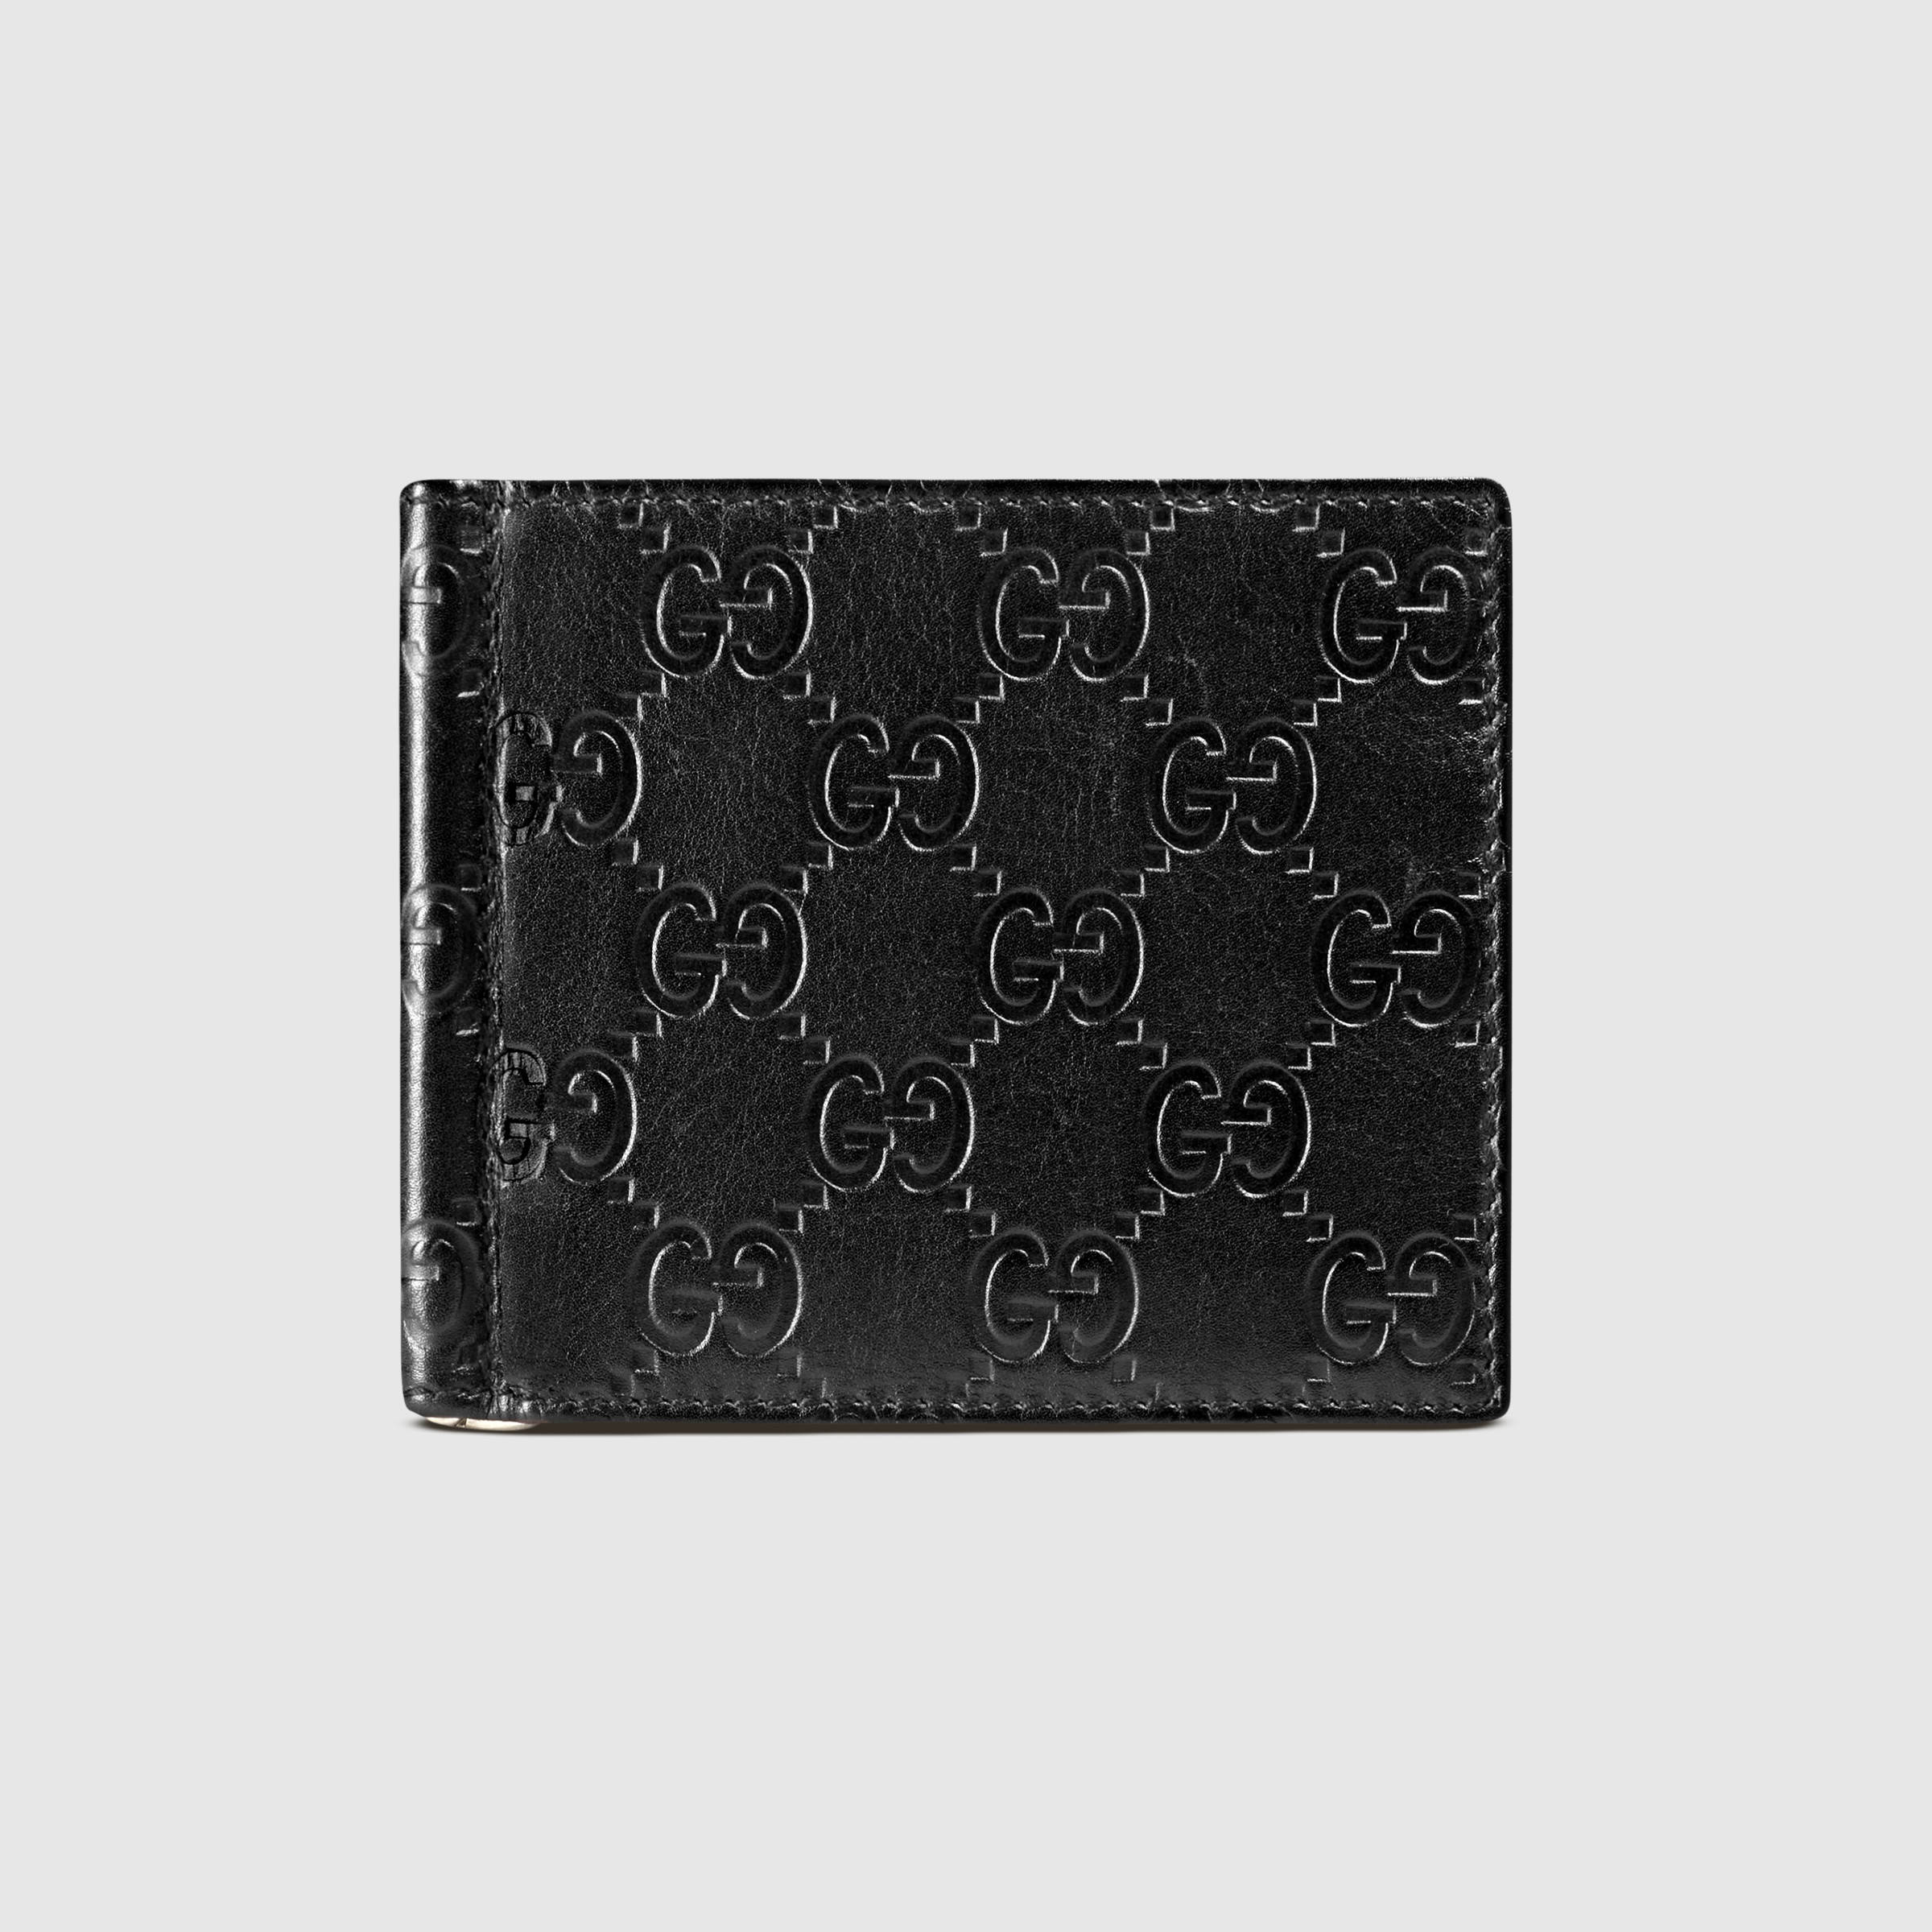 Gucci Money Clip | Designer Mens Wallets with Coin Pocket | Bifold with Money Clip